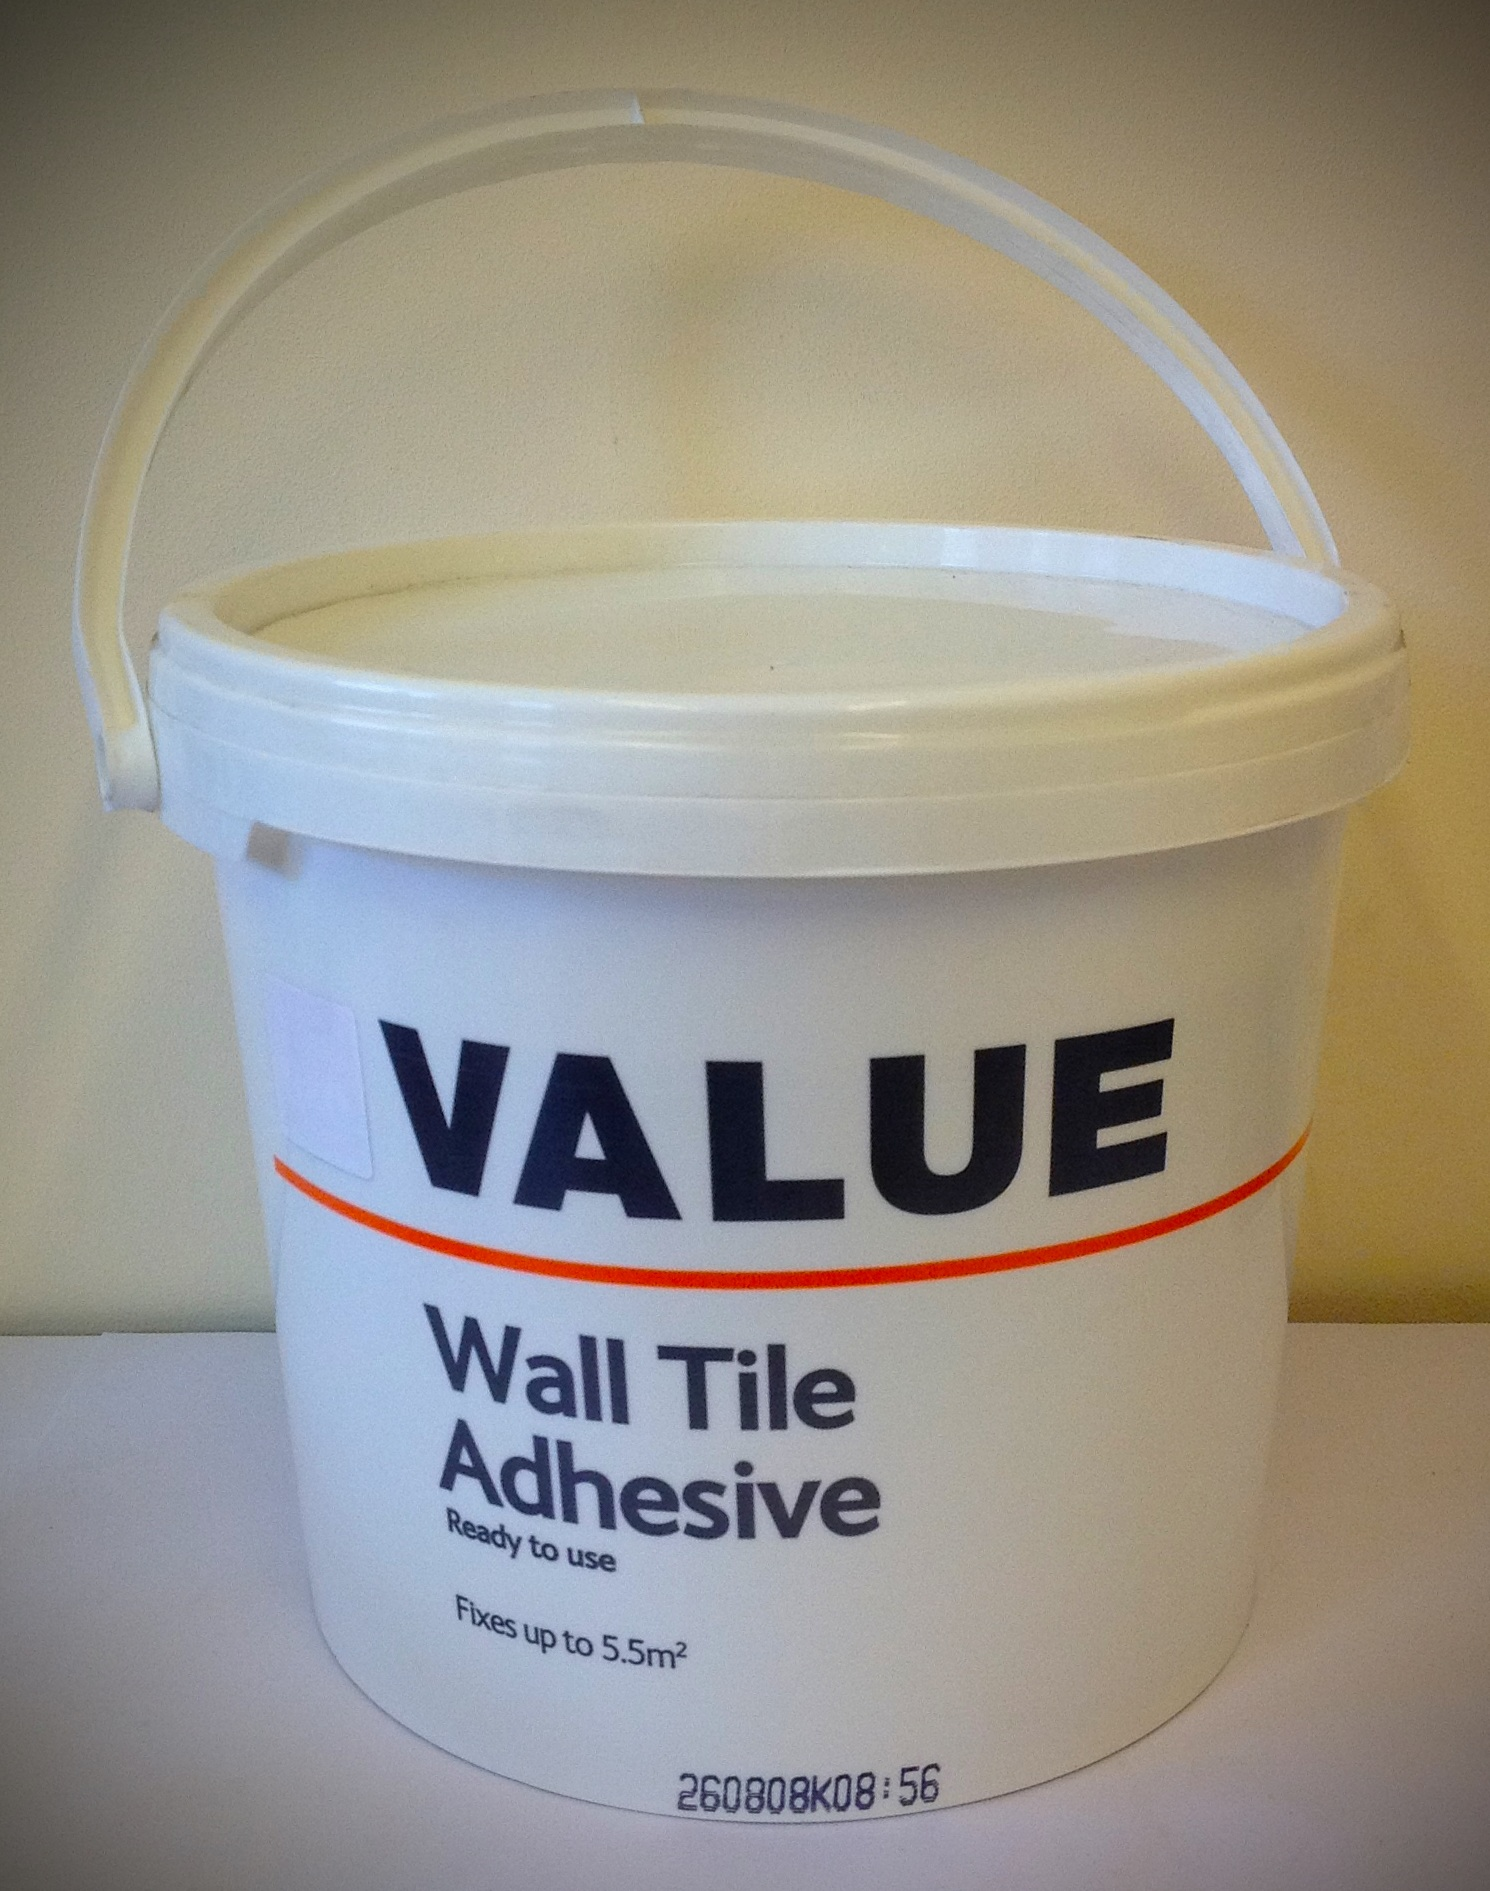 Large Tub Of Value Wall Tile Adhesive Ready To Use Fixes